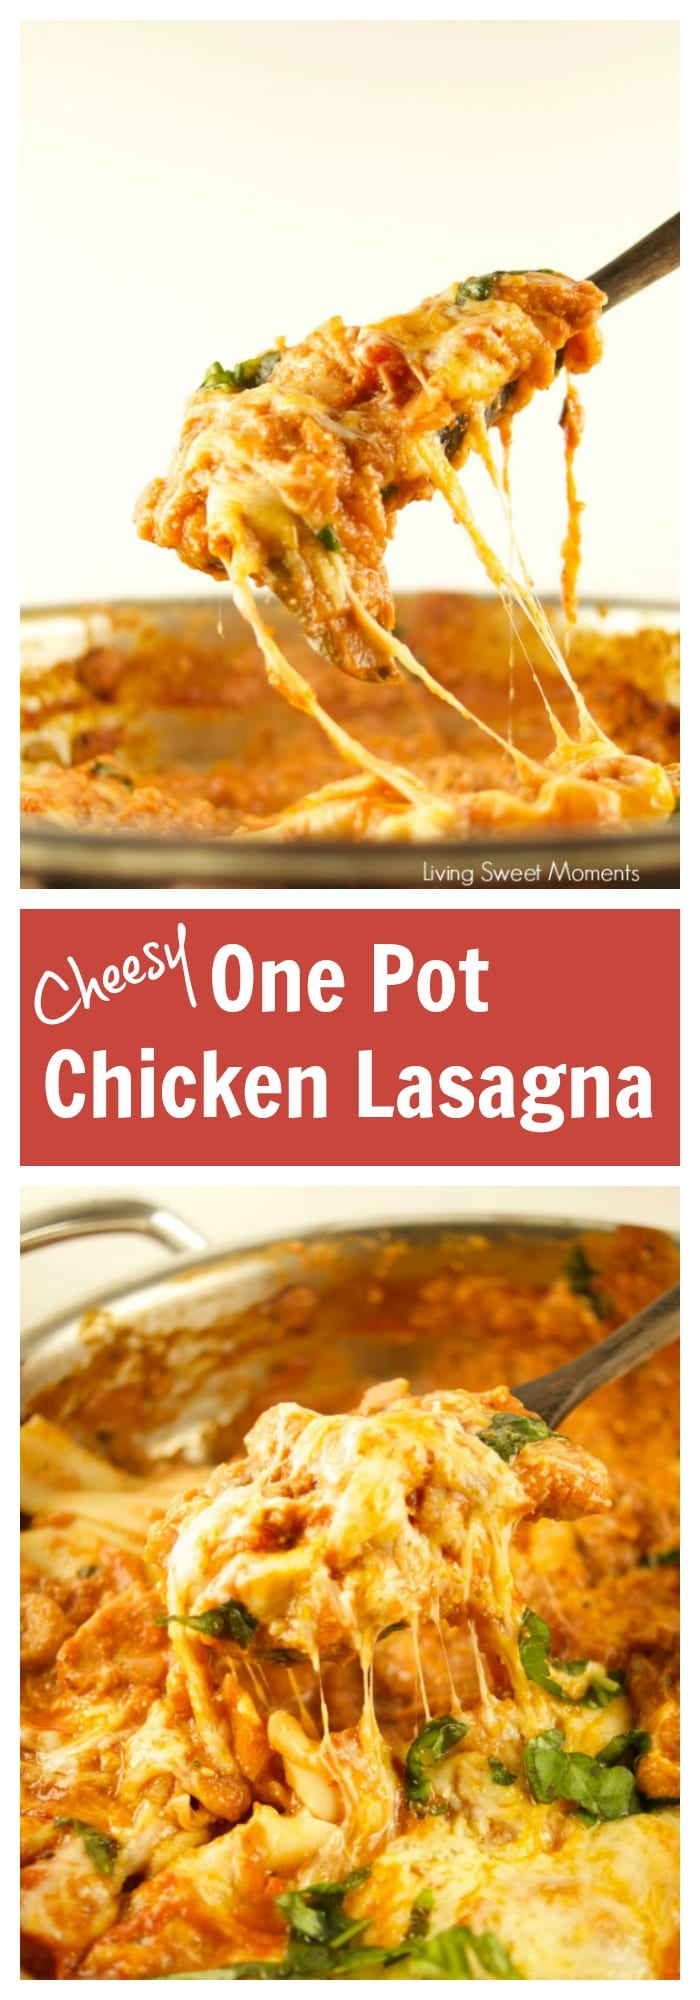 Cheesy One Pot Chicken Lasagna Living Sweet Moments